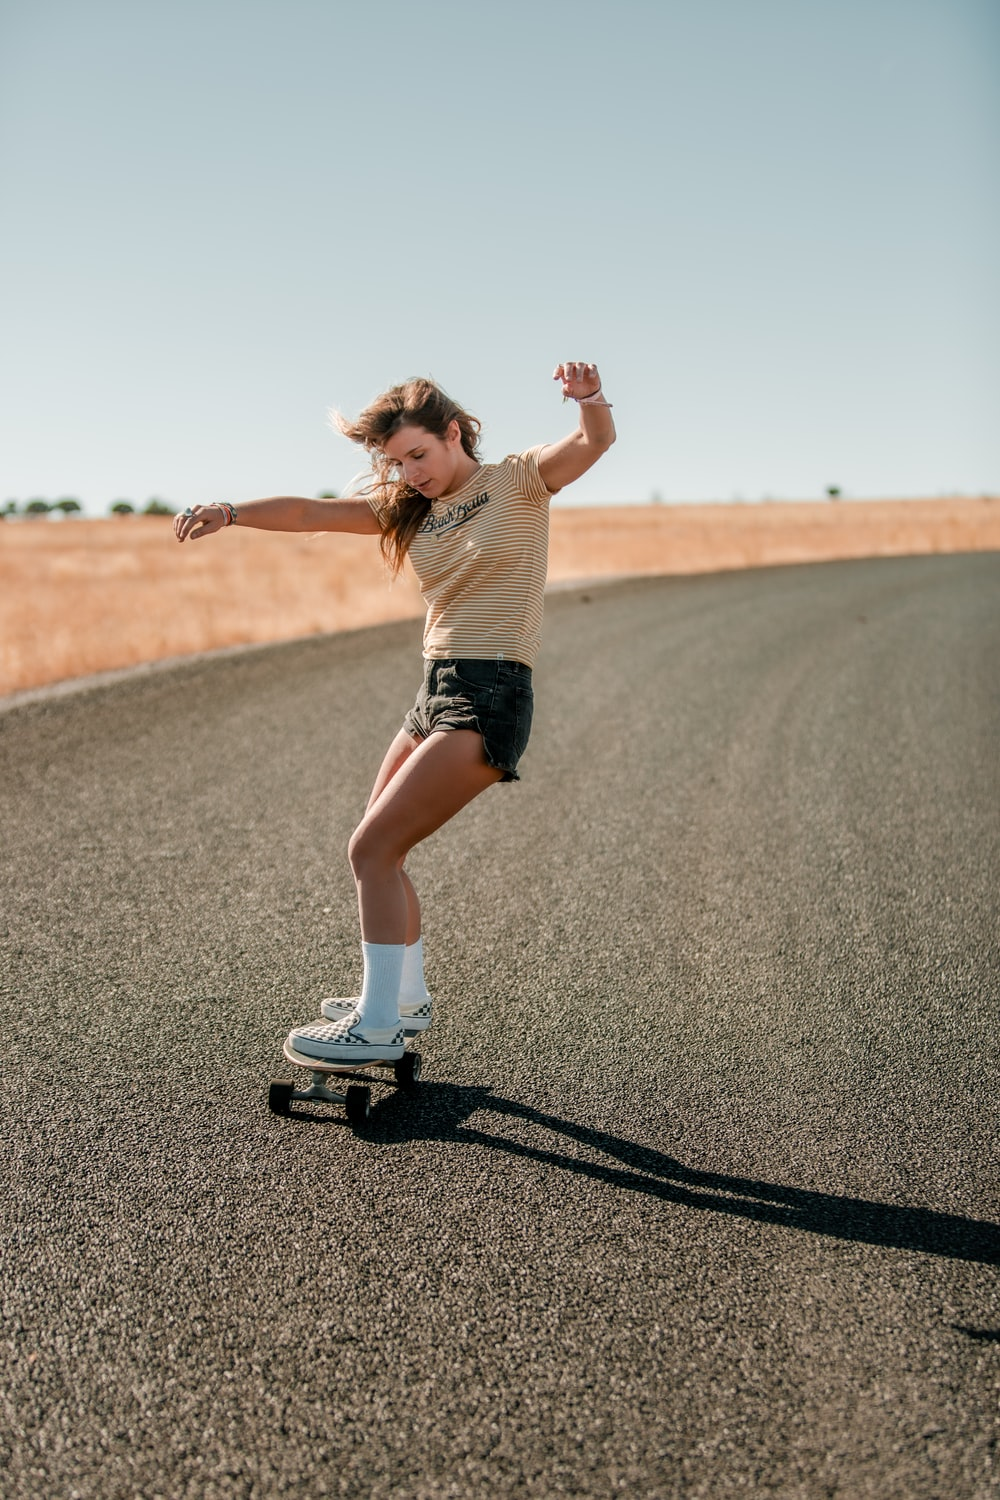 woman in white shirt and black shorts running on road during daytime